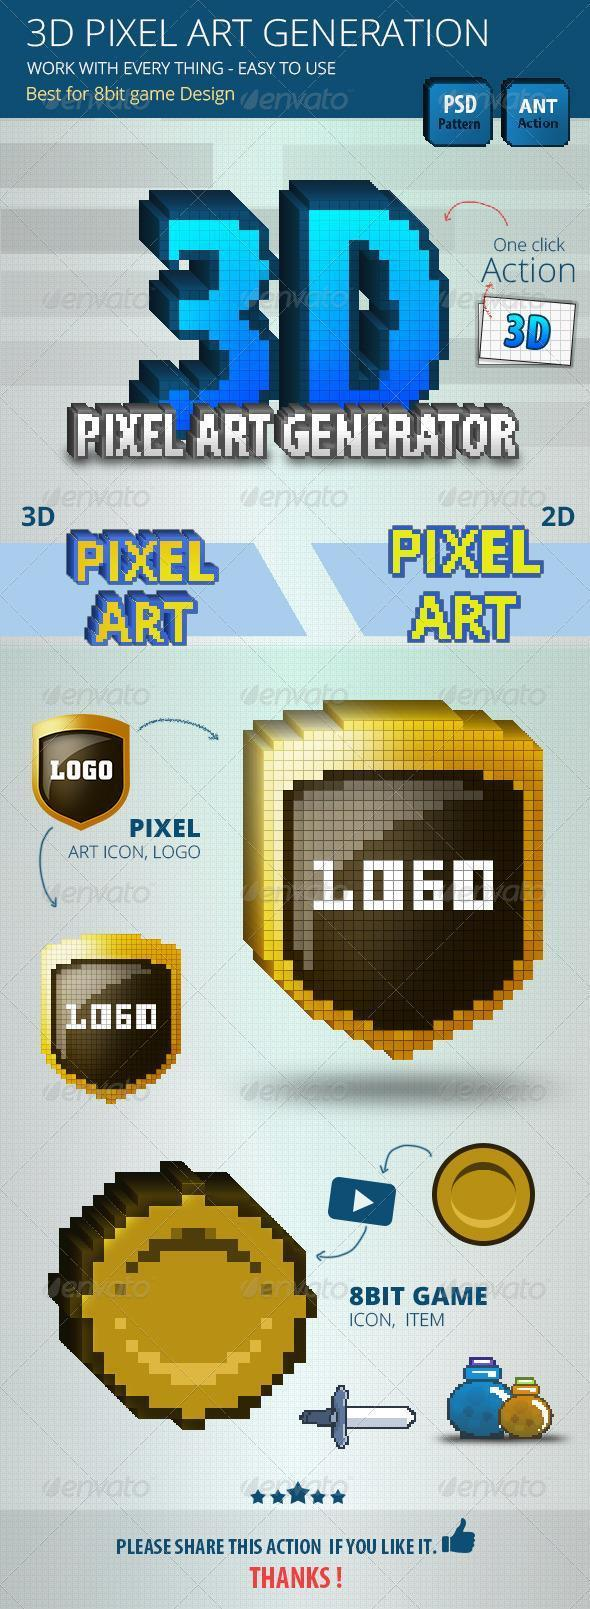 3D Pixel Art Photoshop Action Generator